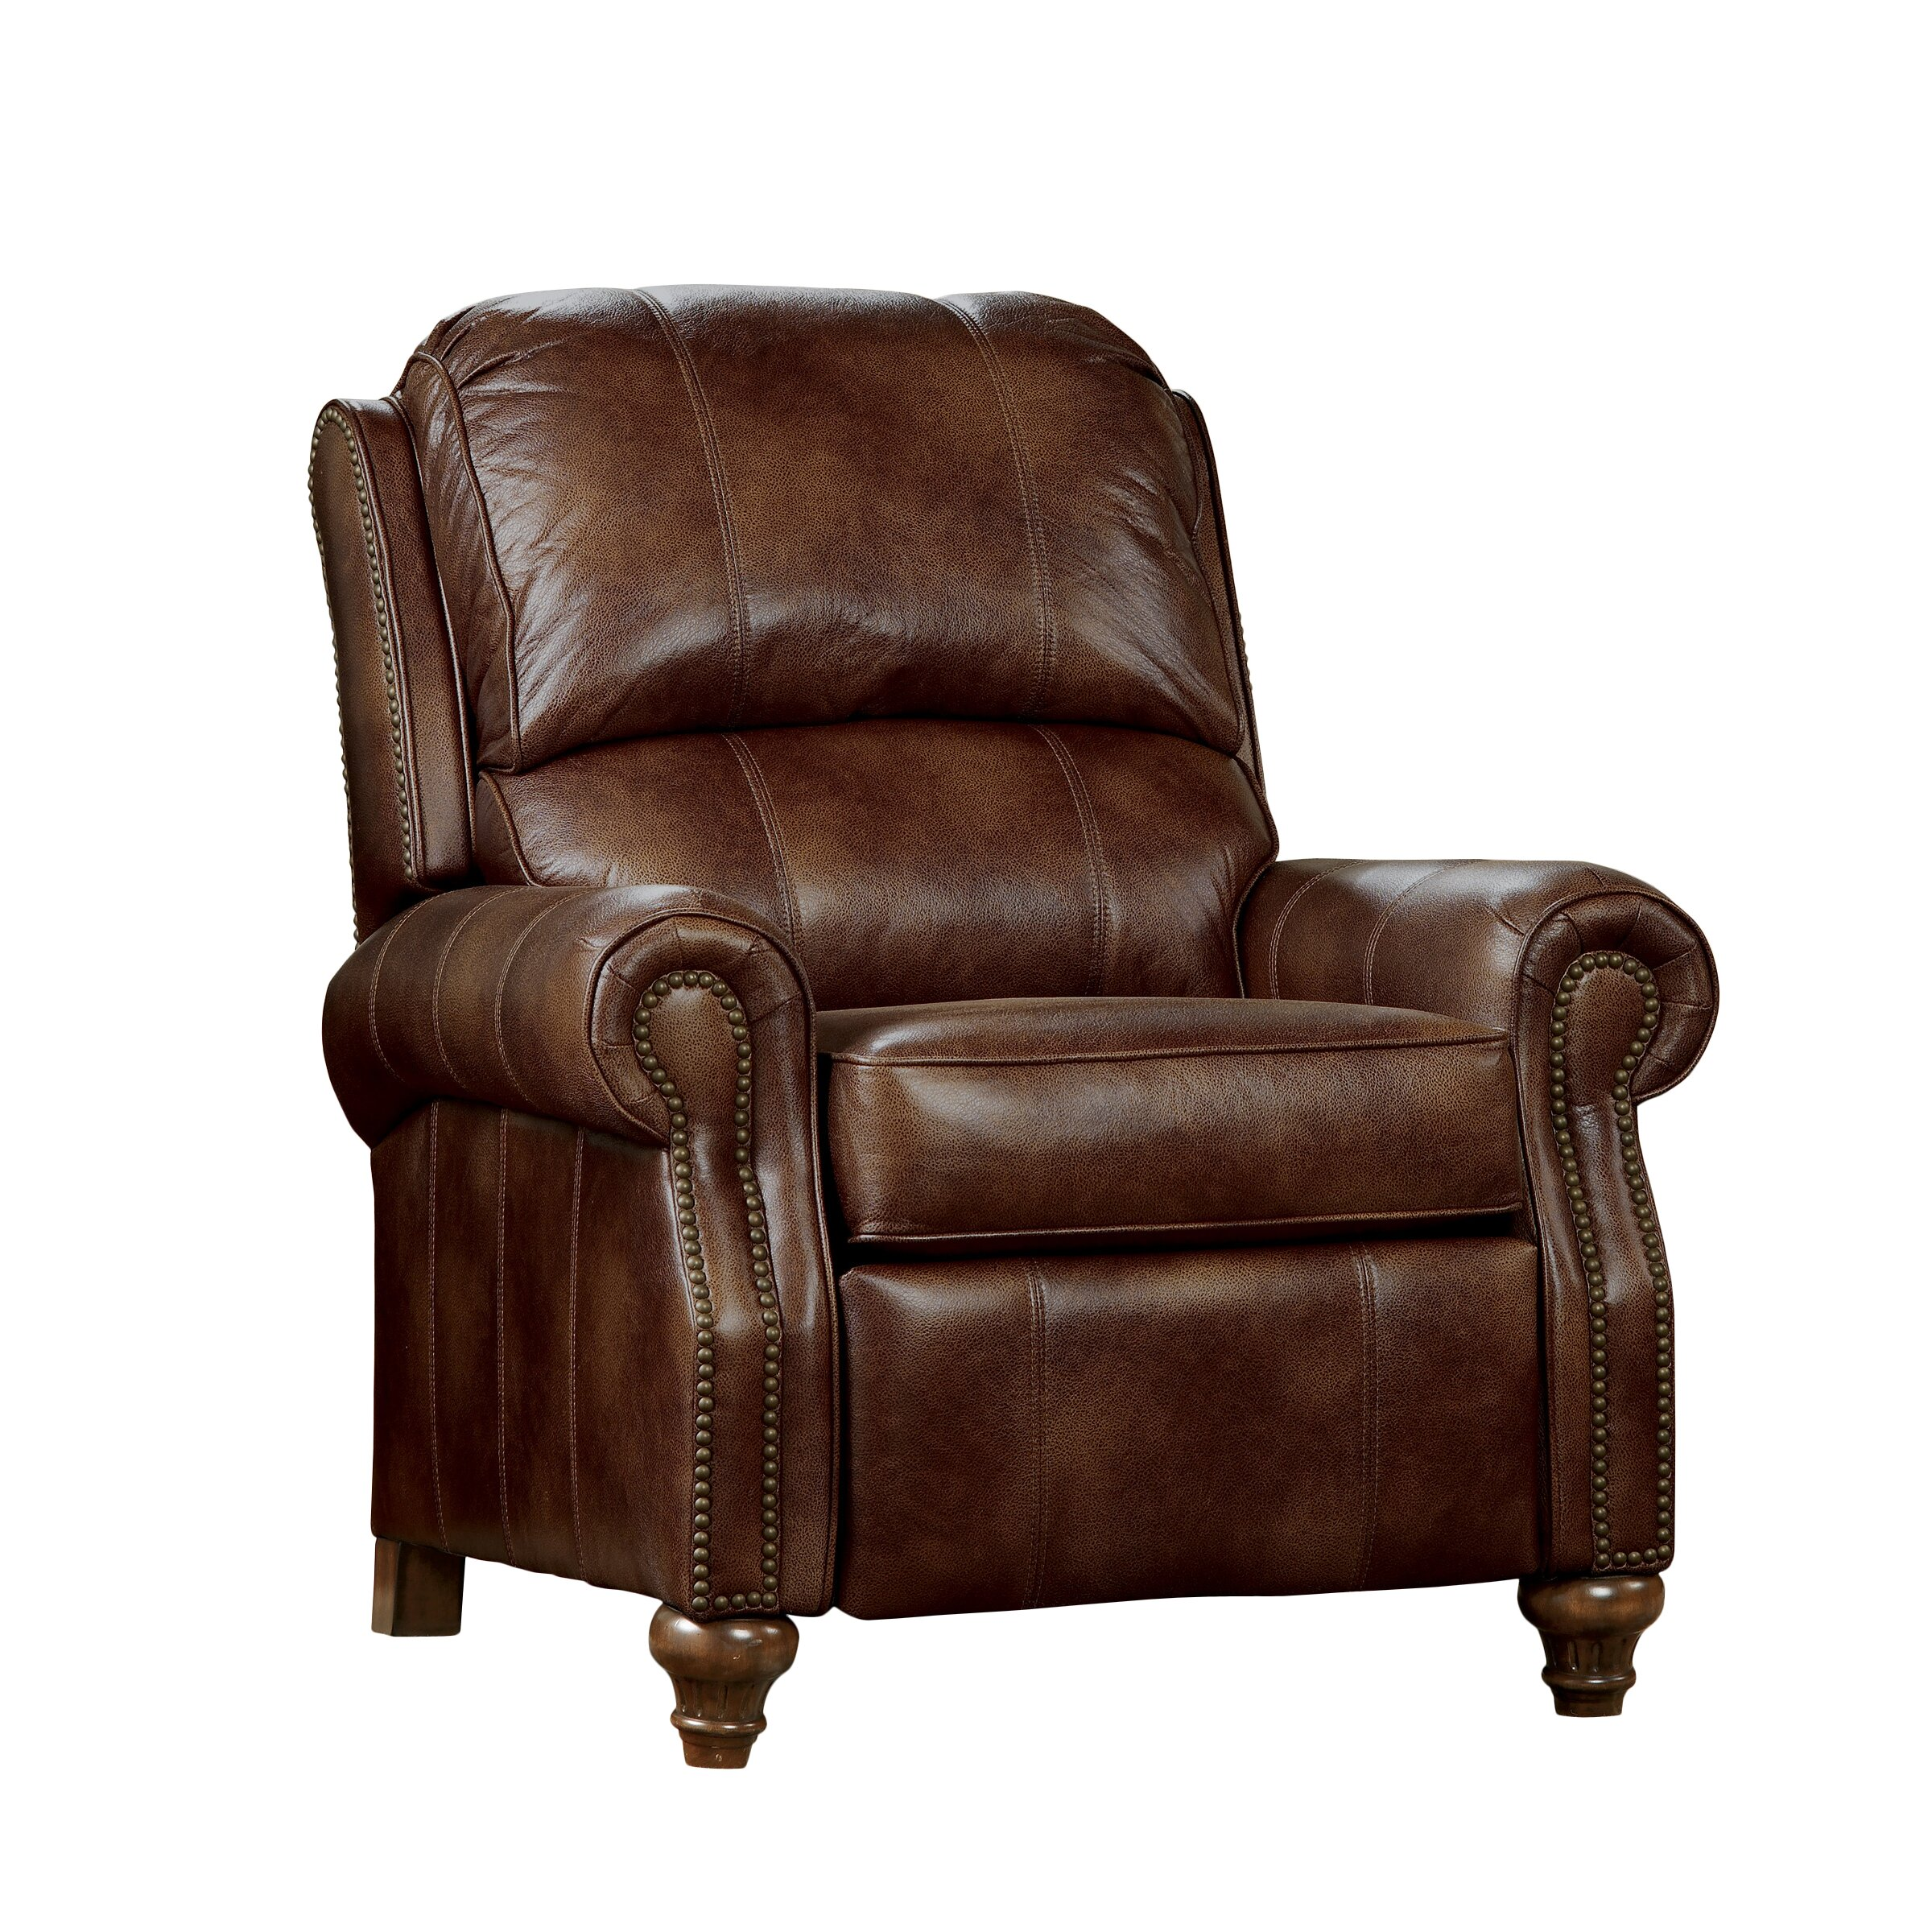 Signature design by ashley gilford low leg chaise recliner for Ashley chaise recliner